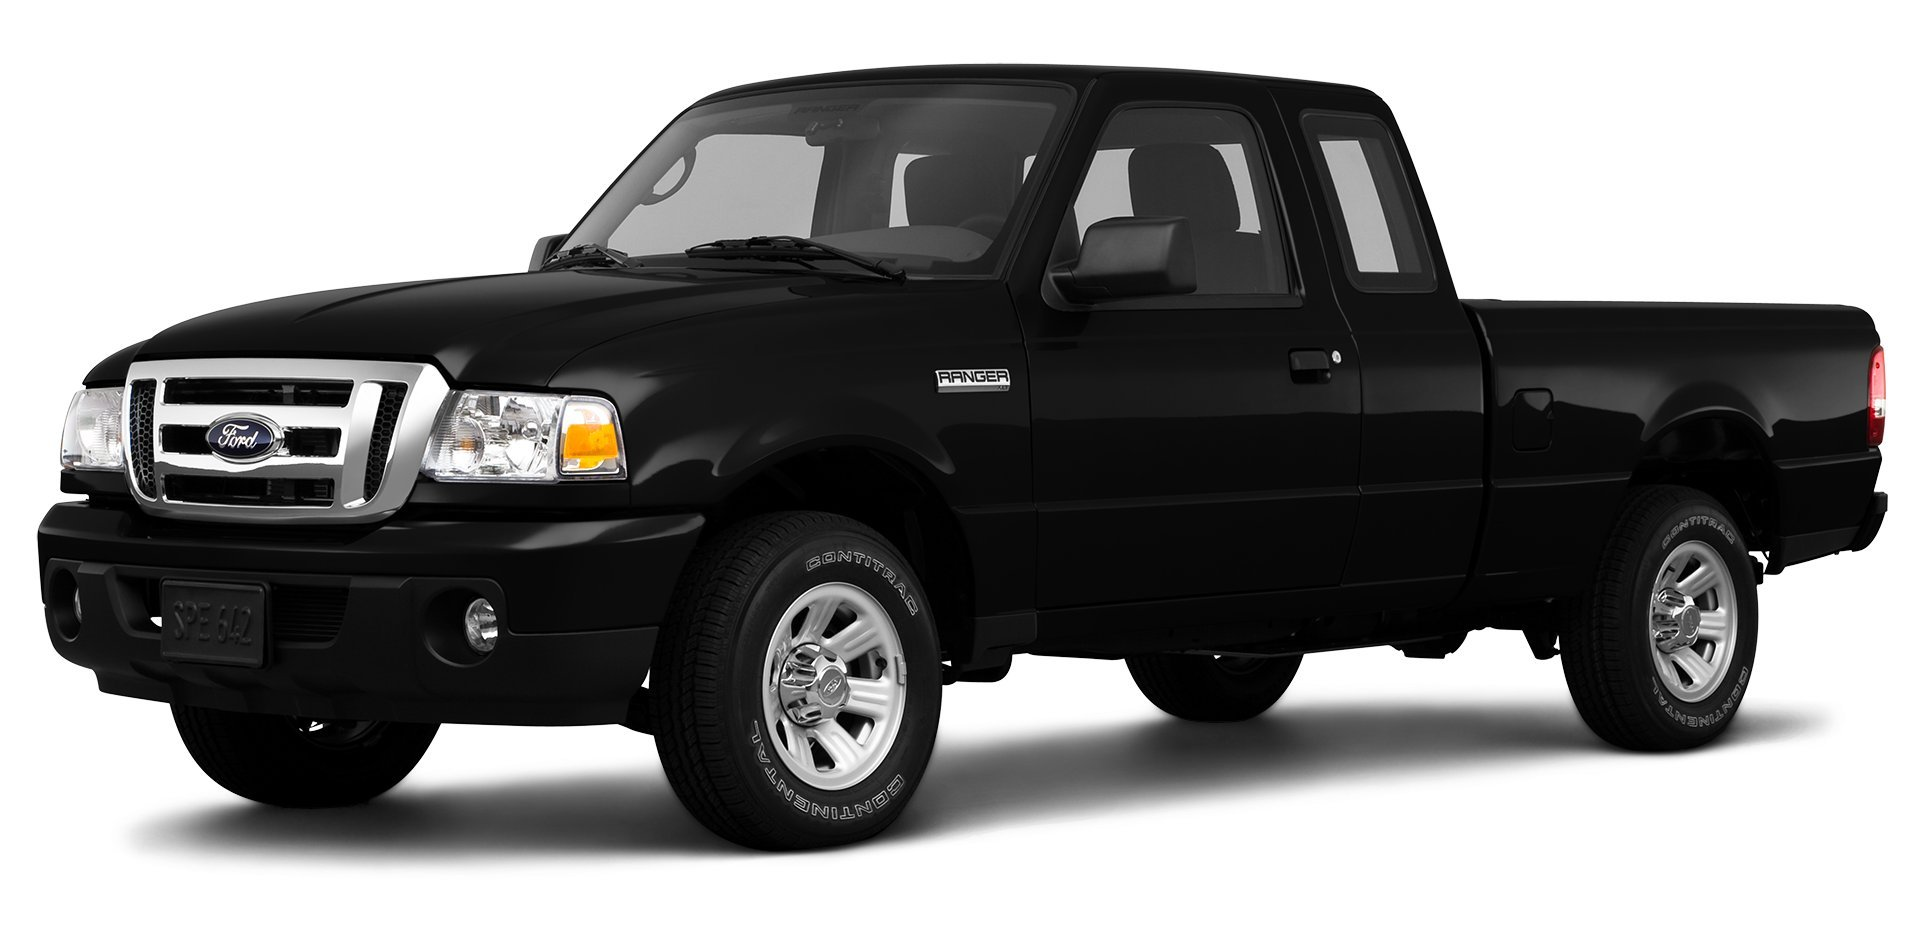 71Mr2Ufgx5L - 2010 Ford Ranger Sport 4 Door At